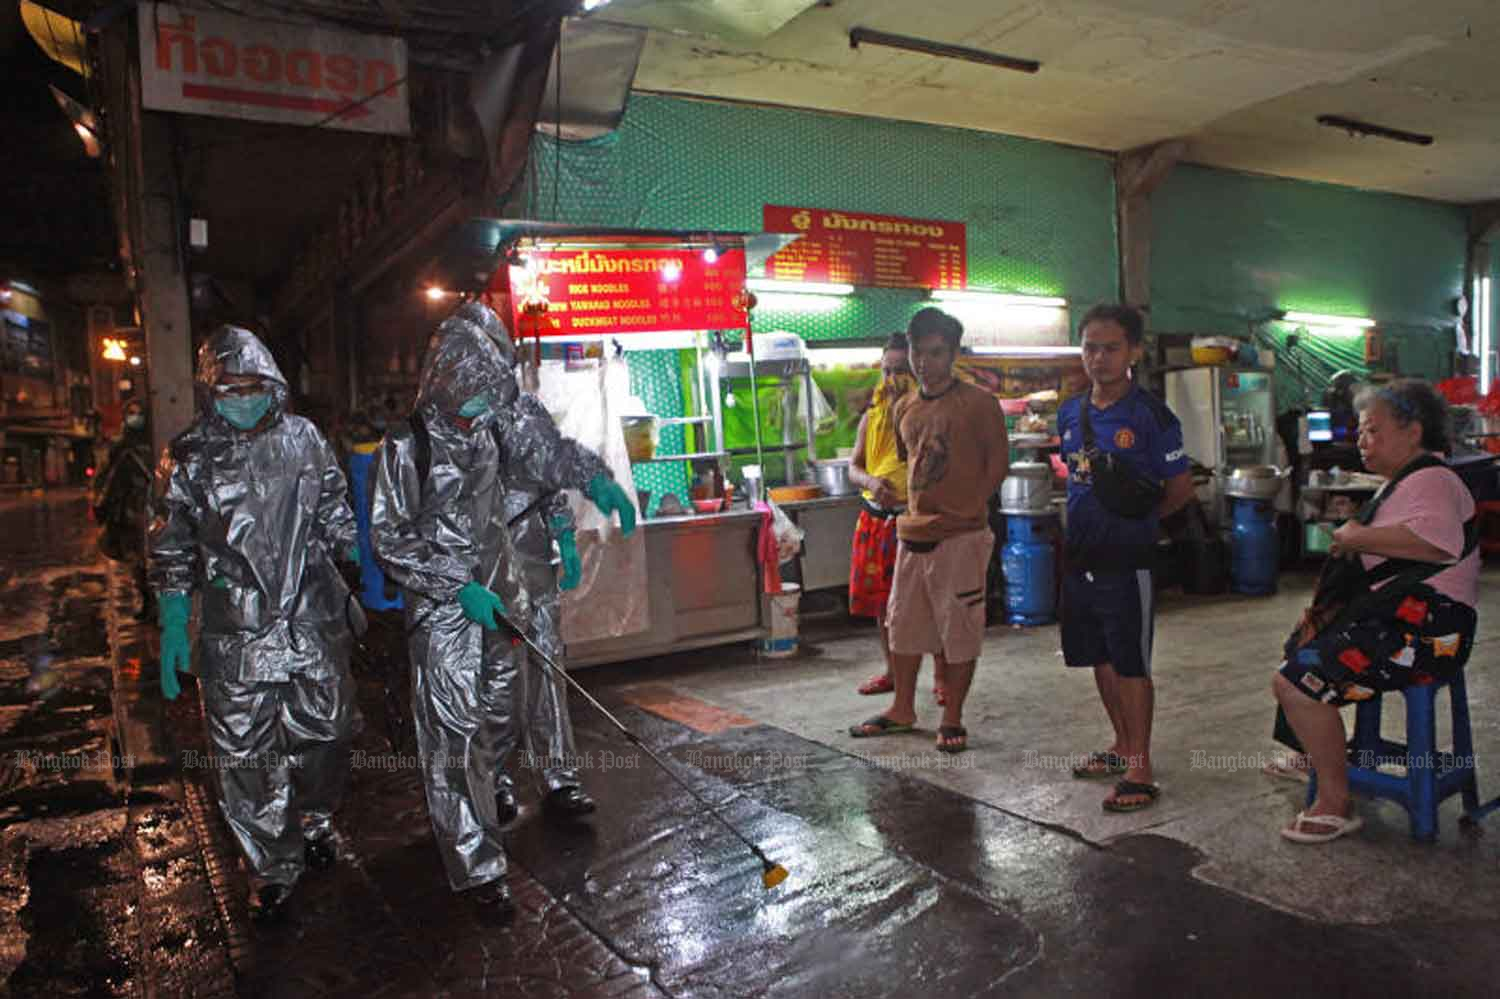 People watch as soldiers in full protective gear spray a disinfectant solution on the footpath in Bangkok's Yaowarat area in the early hours of Thursday. The army will be disinfecting various locations across the city until the end of the month to combat the spread of coronavirus. (Photo by Arnun Chonmahatrakool)